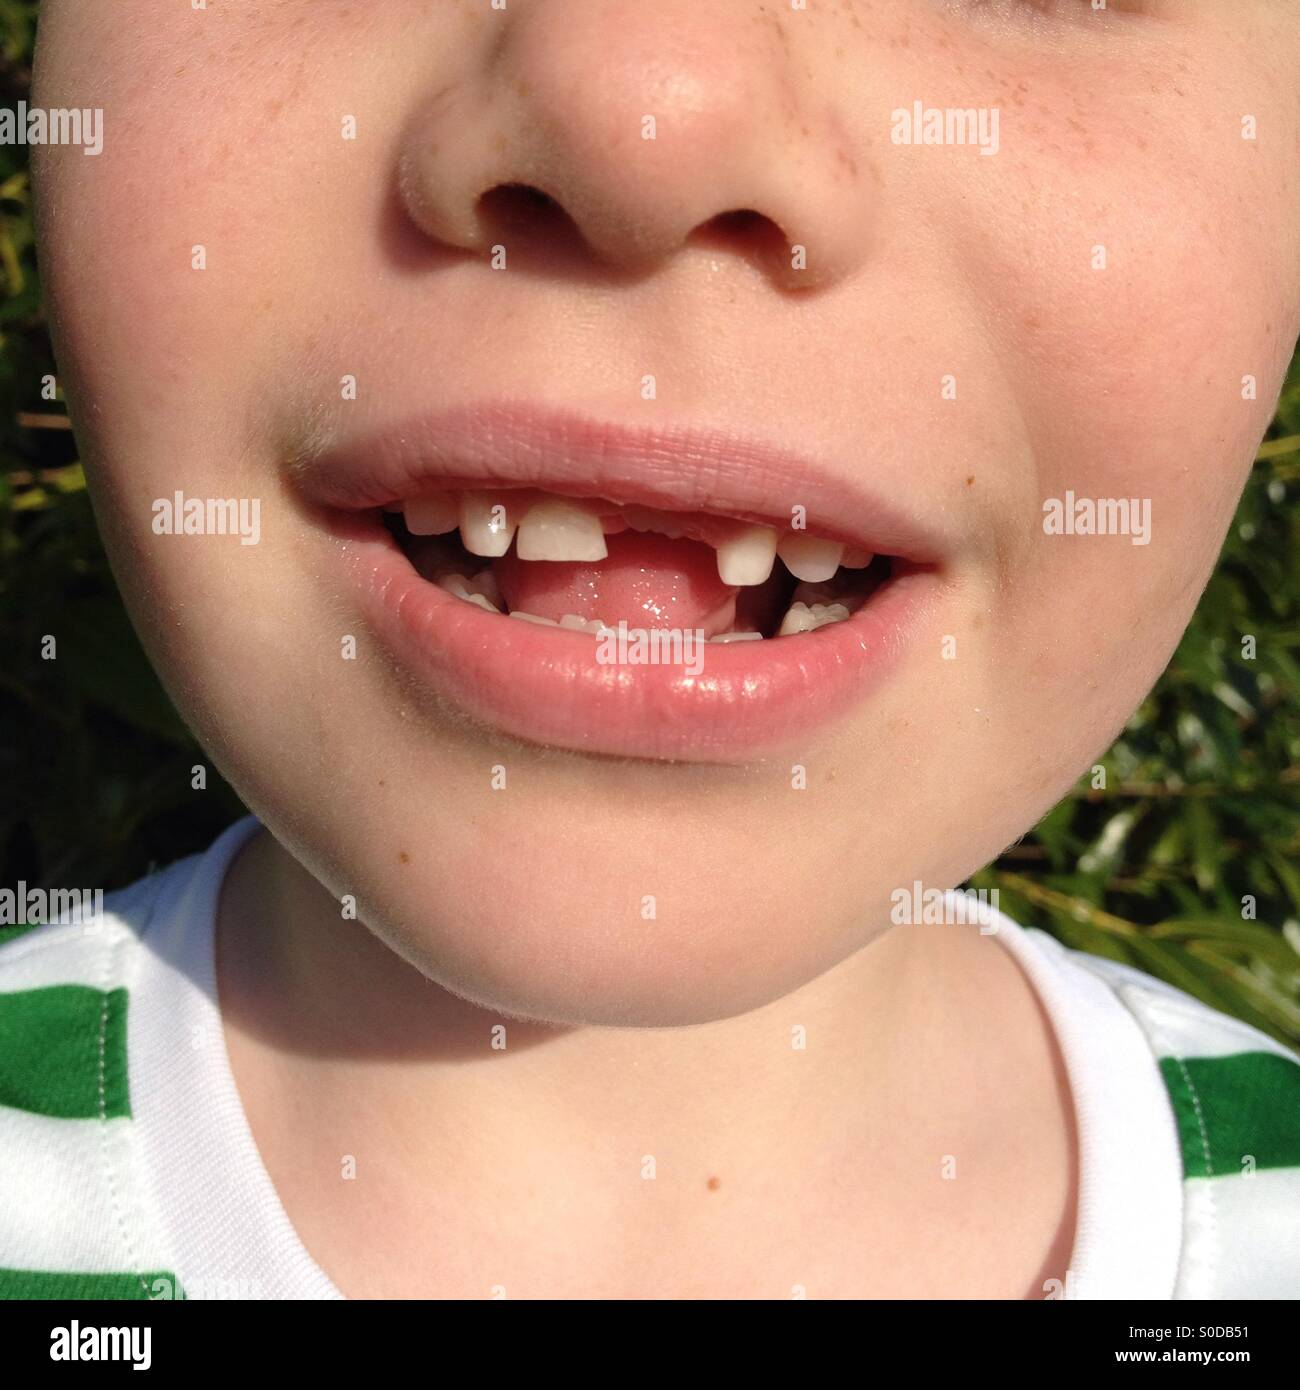 Boy with front tooth missing - Stock Image